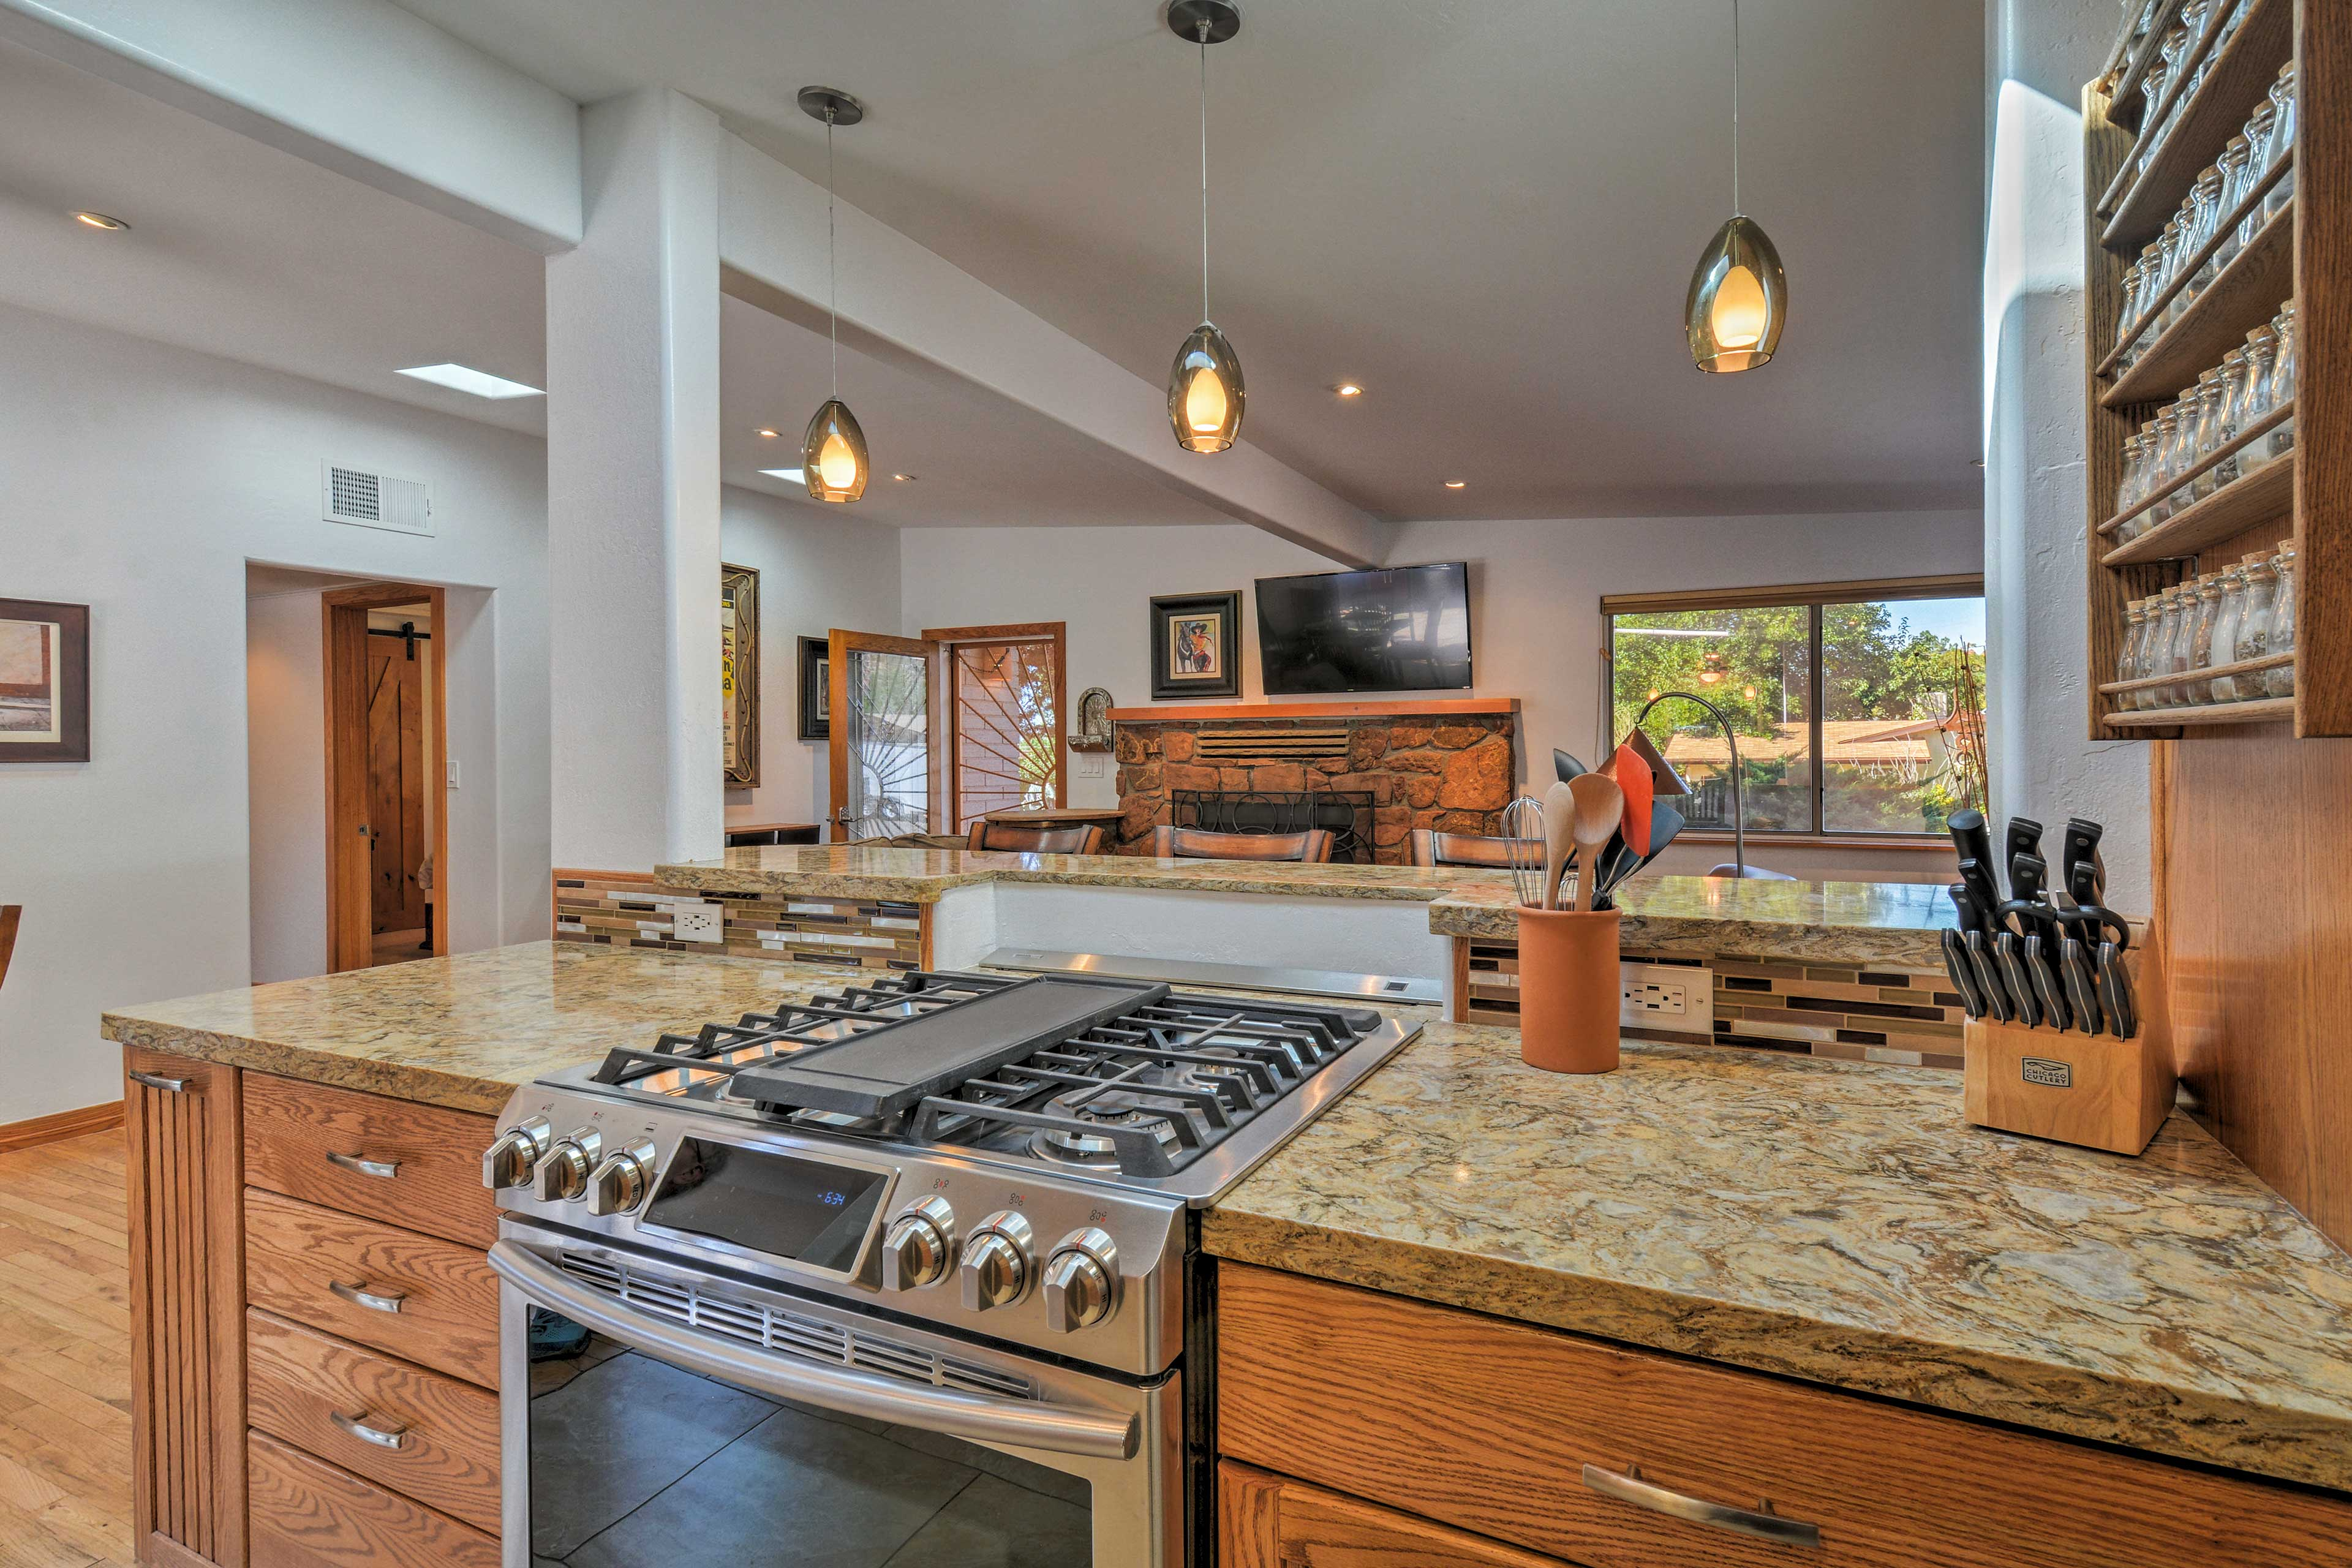 Fully Equipped Kitchen | Ceiling Fan | Knife Set